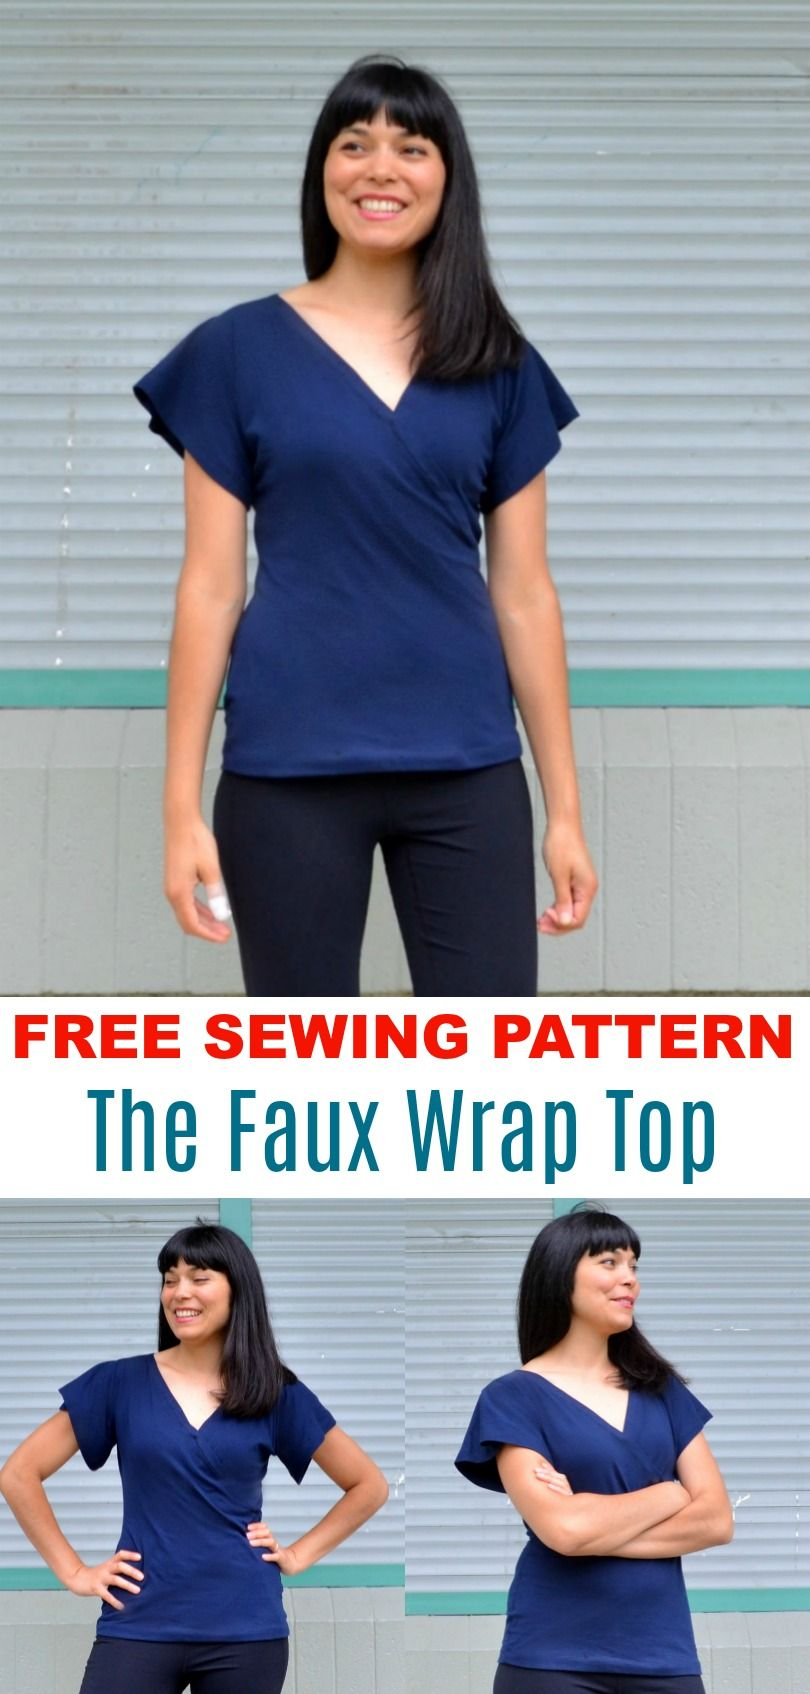 FREE SEWING PATTERN: The Faux Wrap Top Pattern - On the Cutting ...